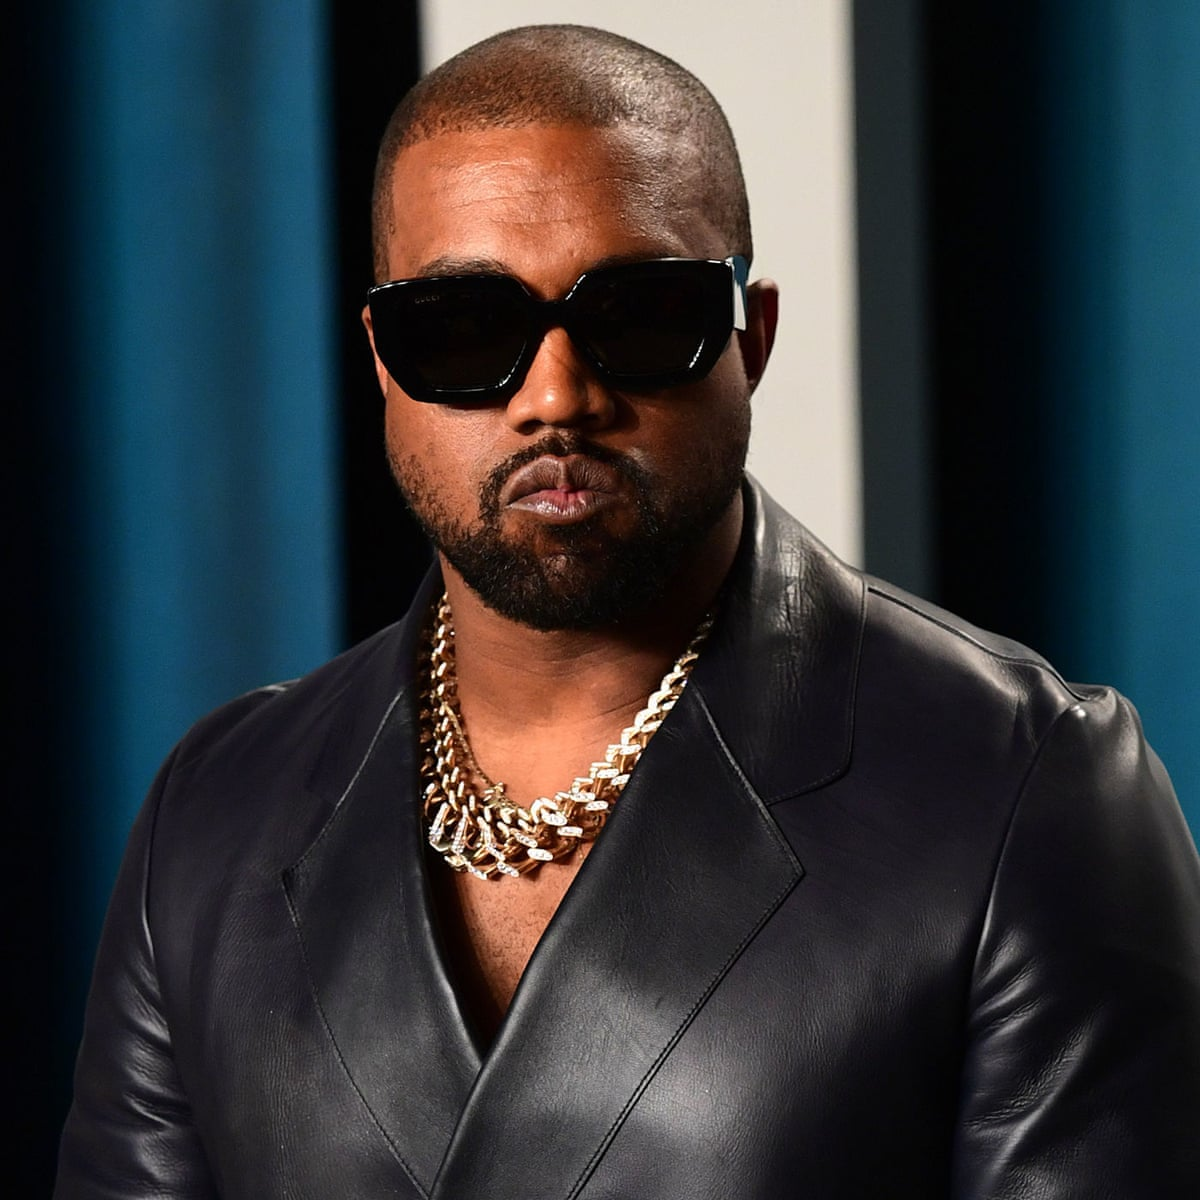 Kanye West has now been declared a billionaire by Forbes but Kanye still feels Forbes undervalued him.